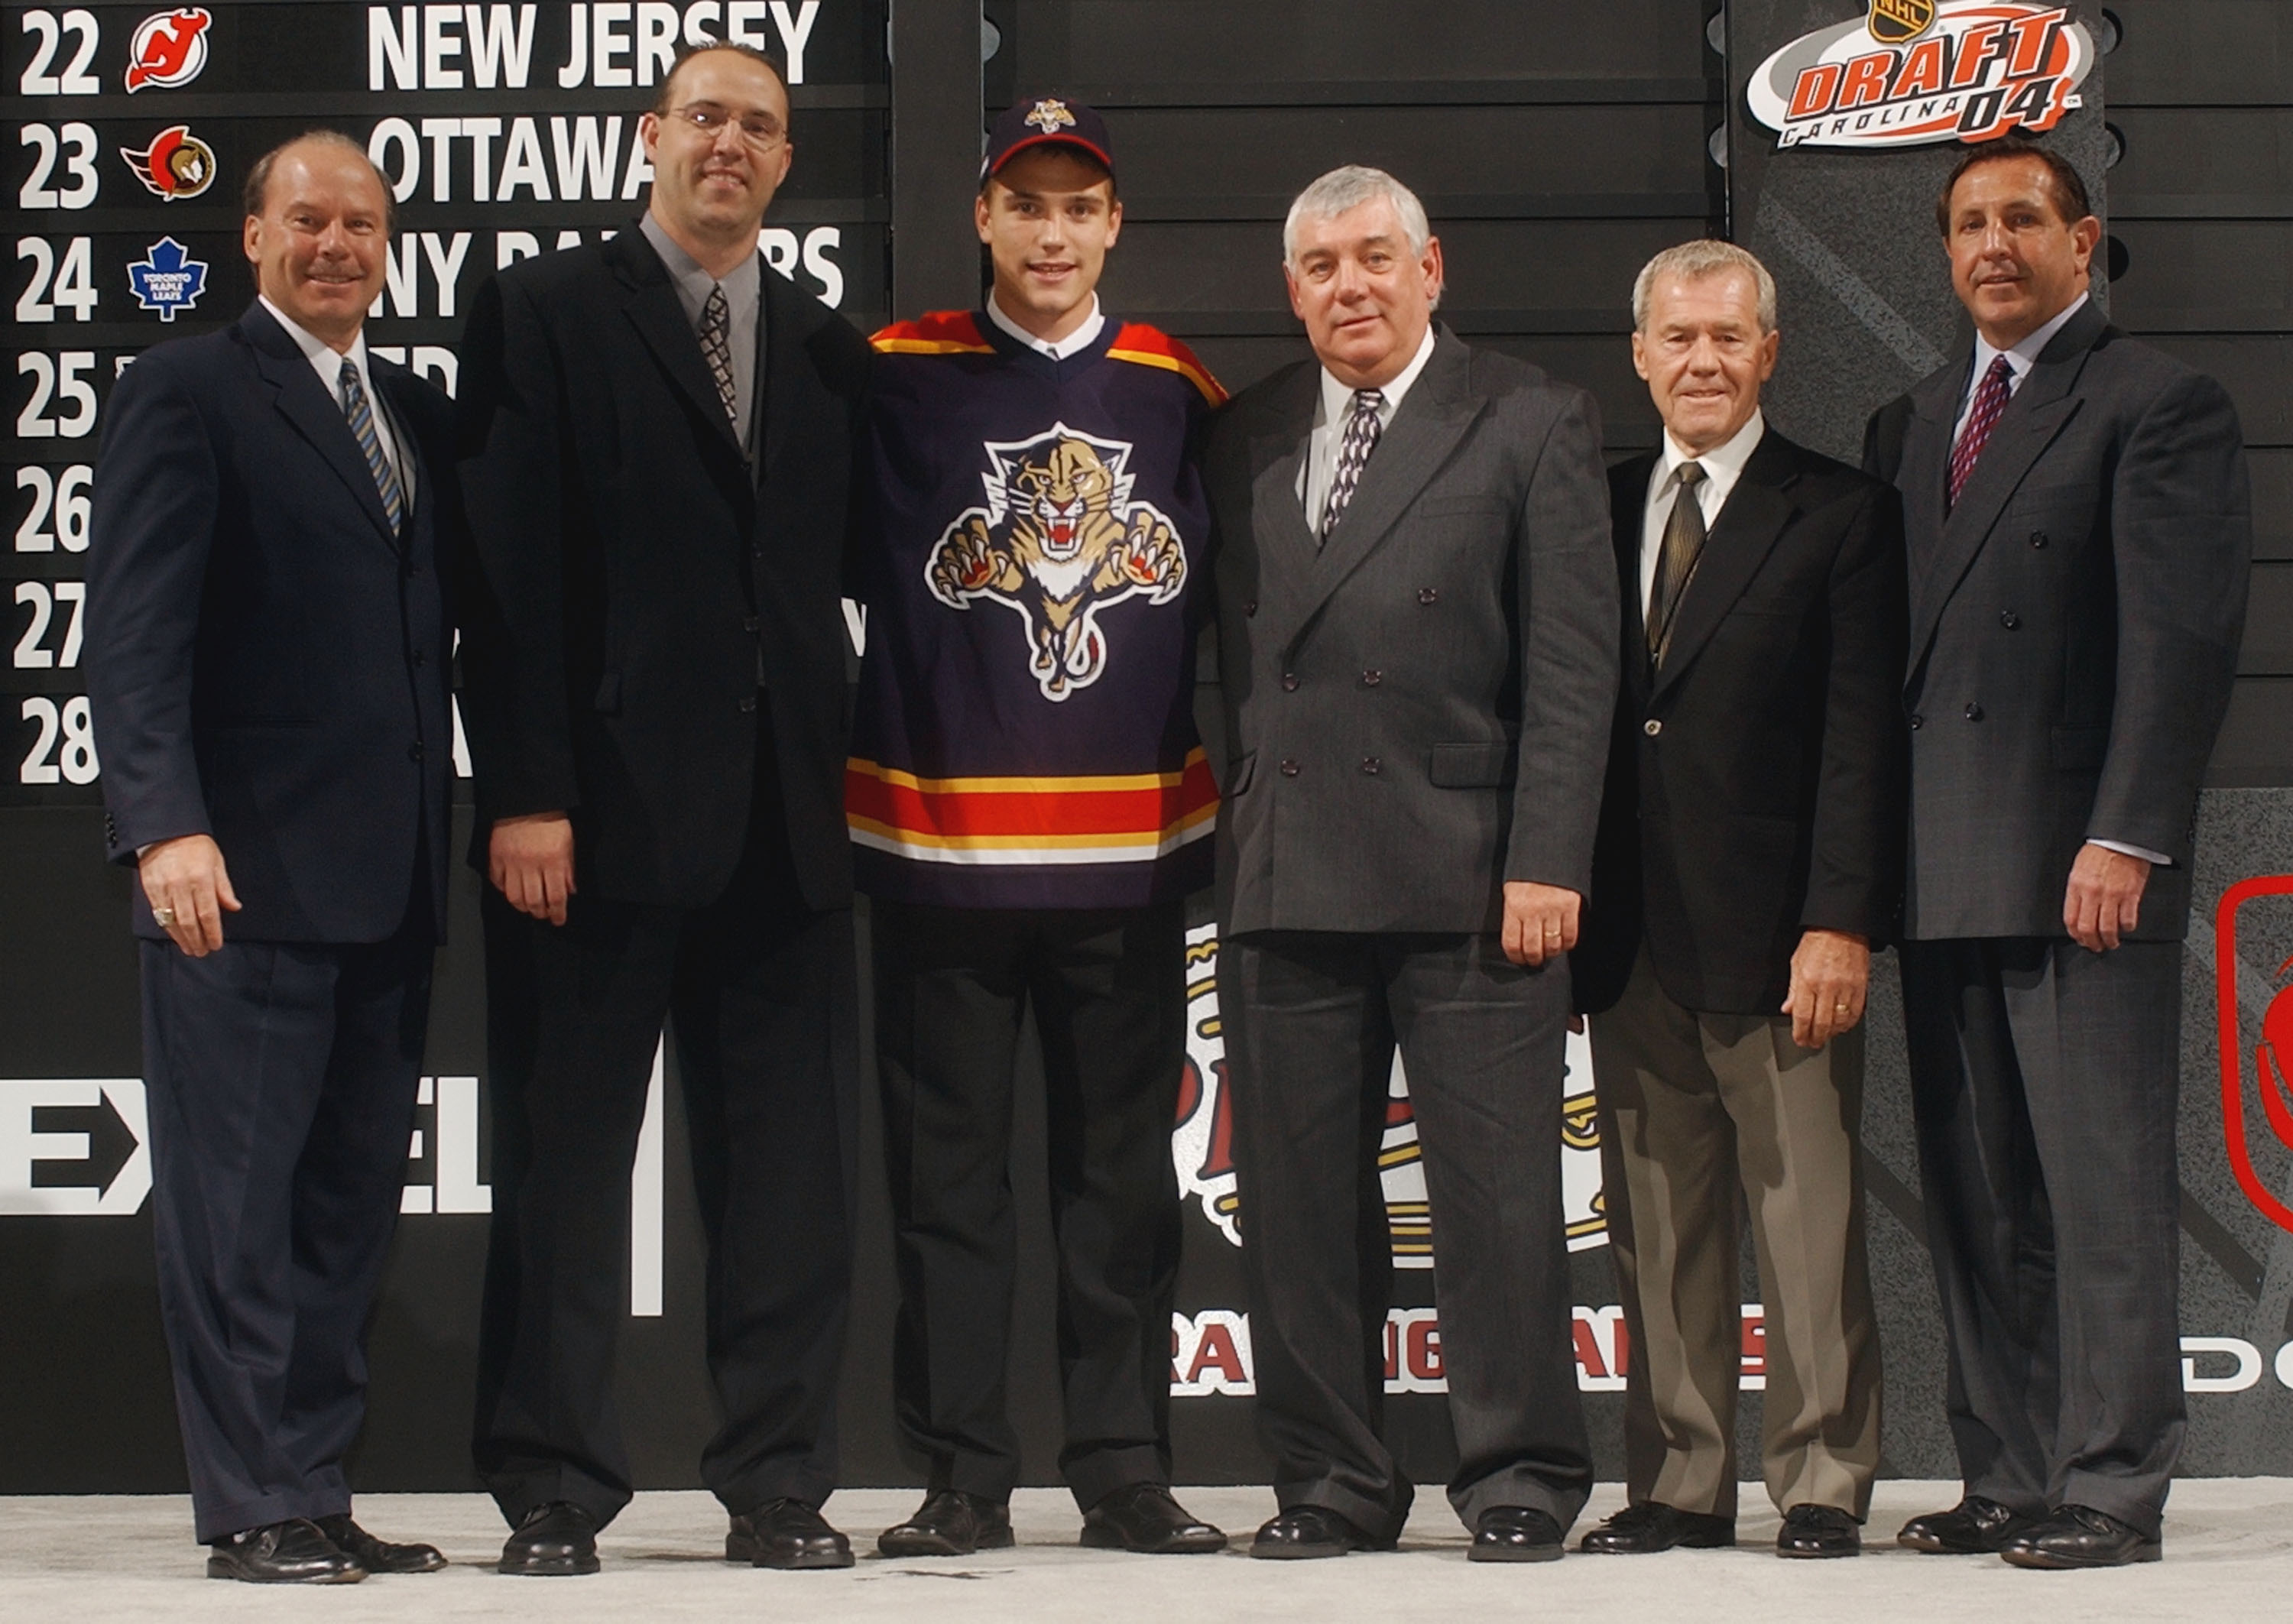 Billy Dea, second from the right, served as a scout for the Florida Panthers after his playing career. (Getty Images)